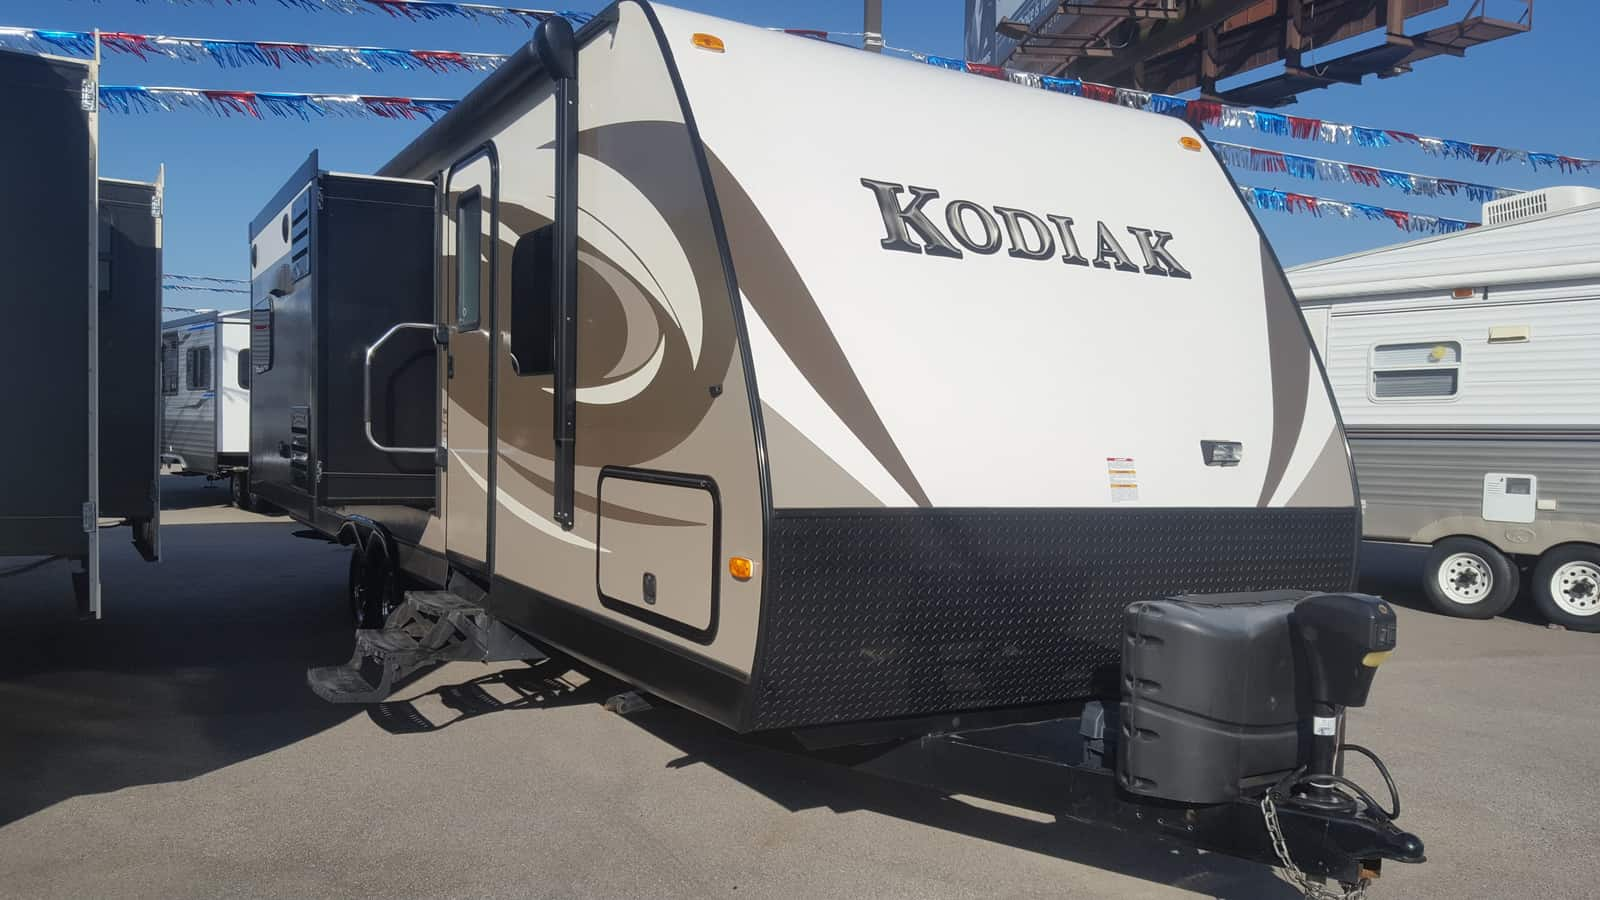 USED 2015 Dutchmen KODIAK 279RBSL - American RV